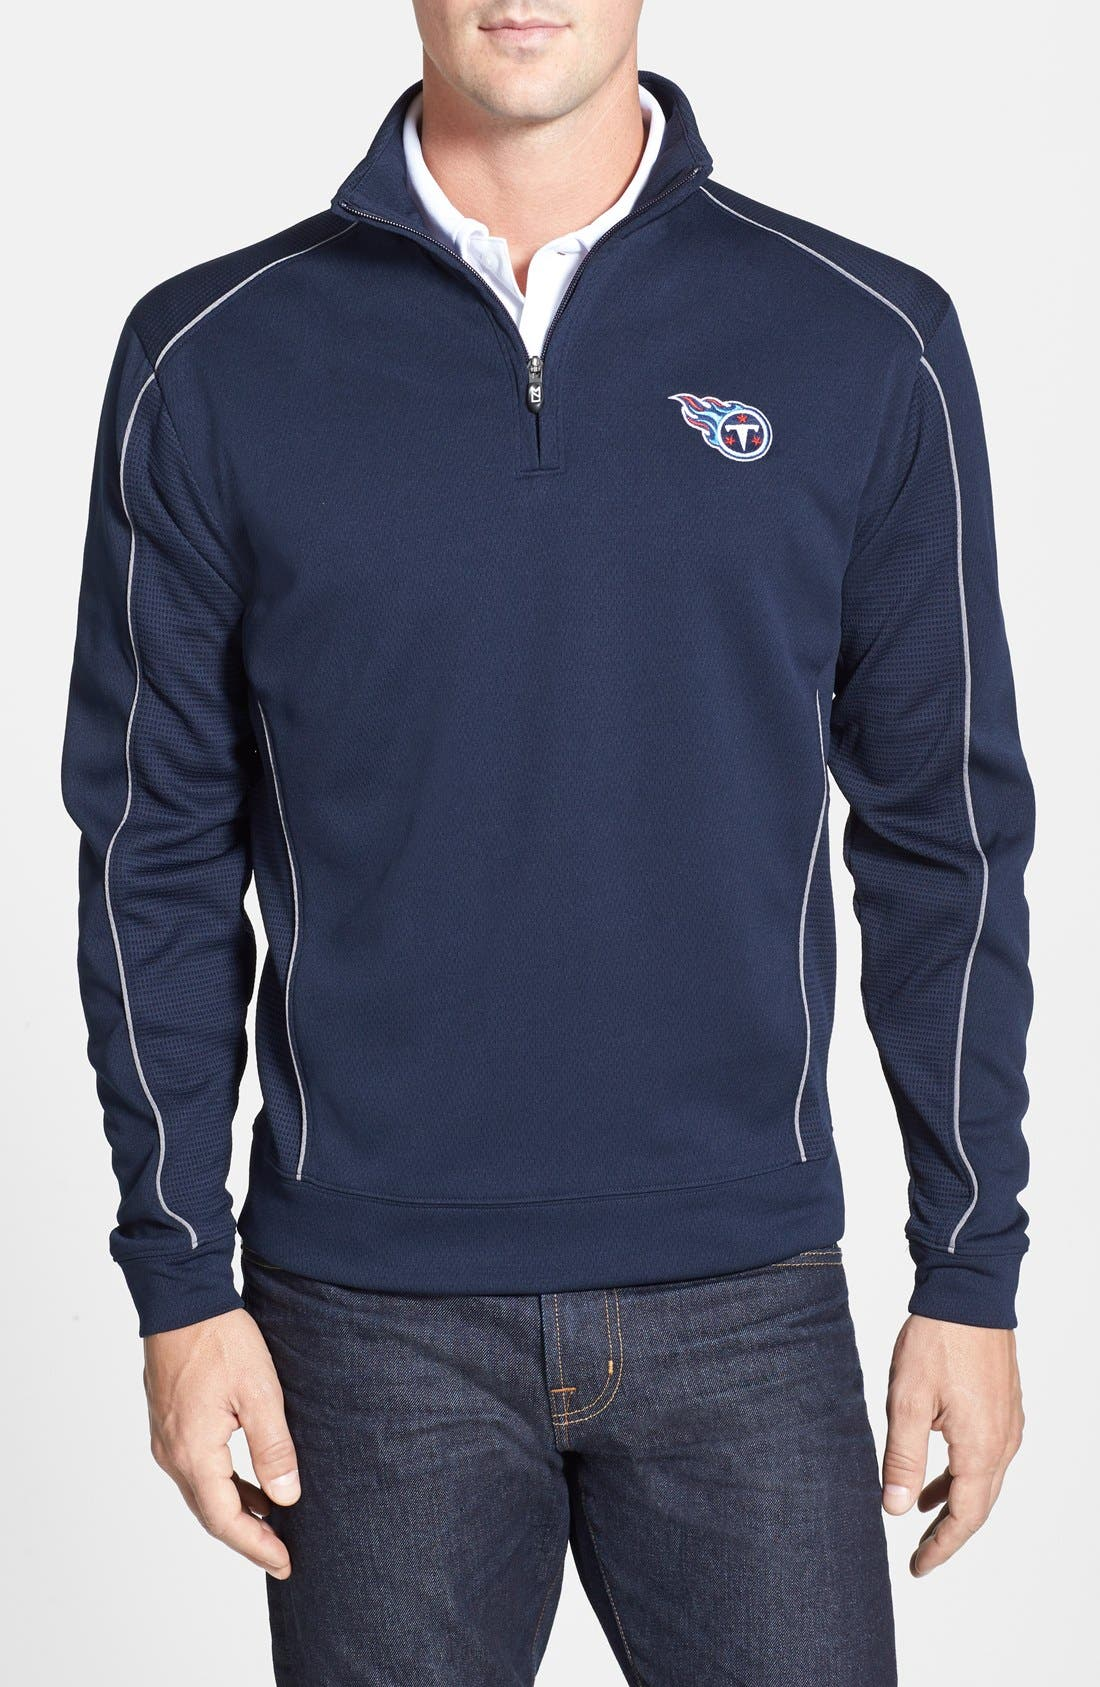 Tennessee Titans - Edge DryTec Moisture Wicking Half Zip Pullover,                         Main,                         color, Navy Blue